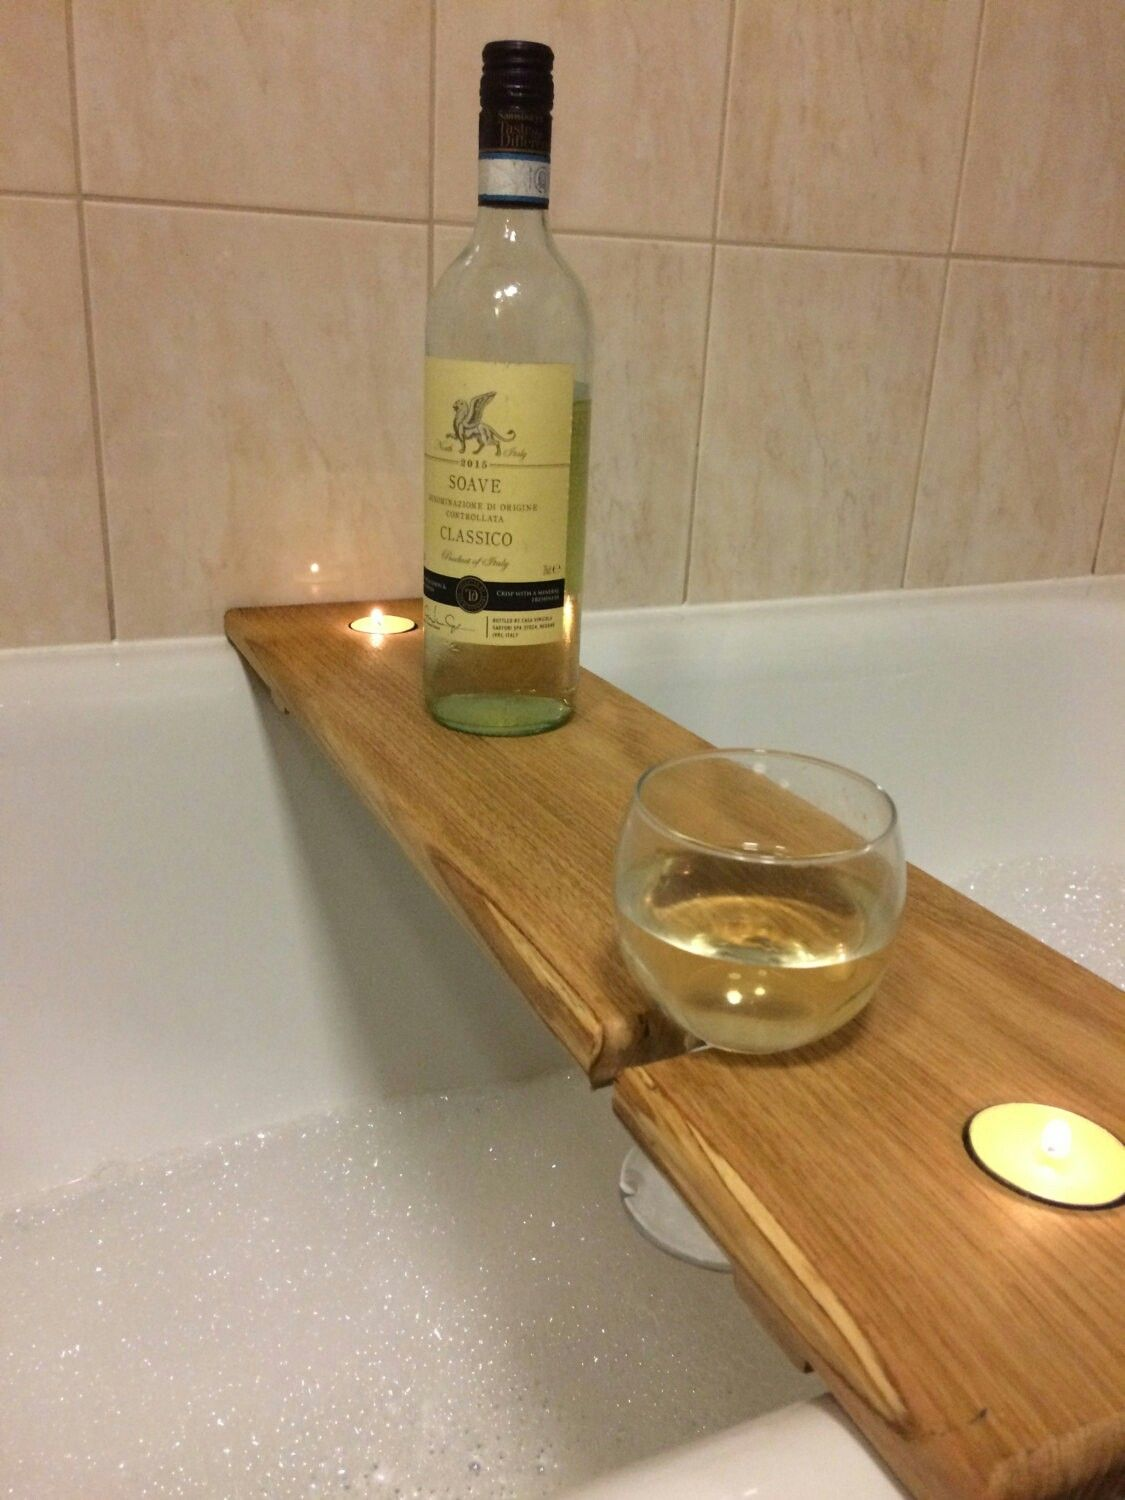 Pin by Orchard Crest Investment Group on BATH TUB CADDY